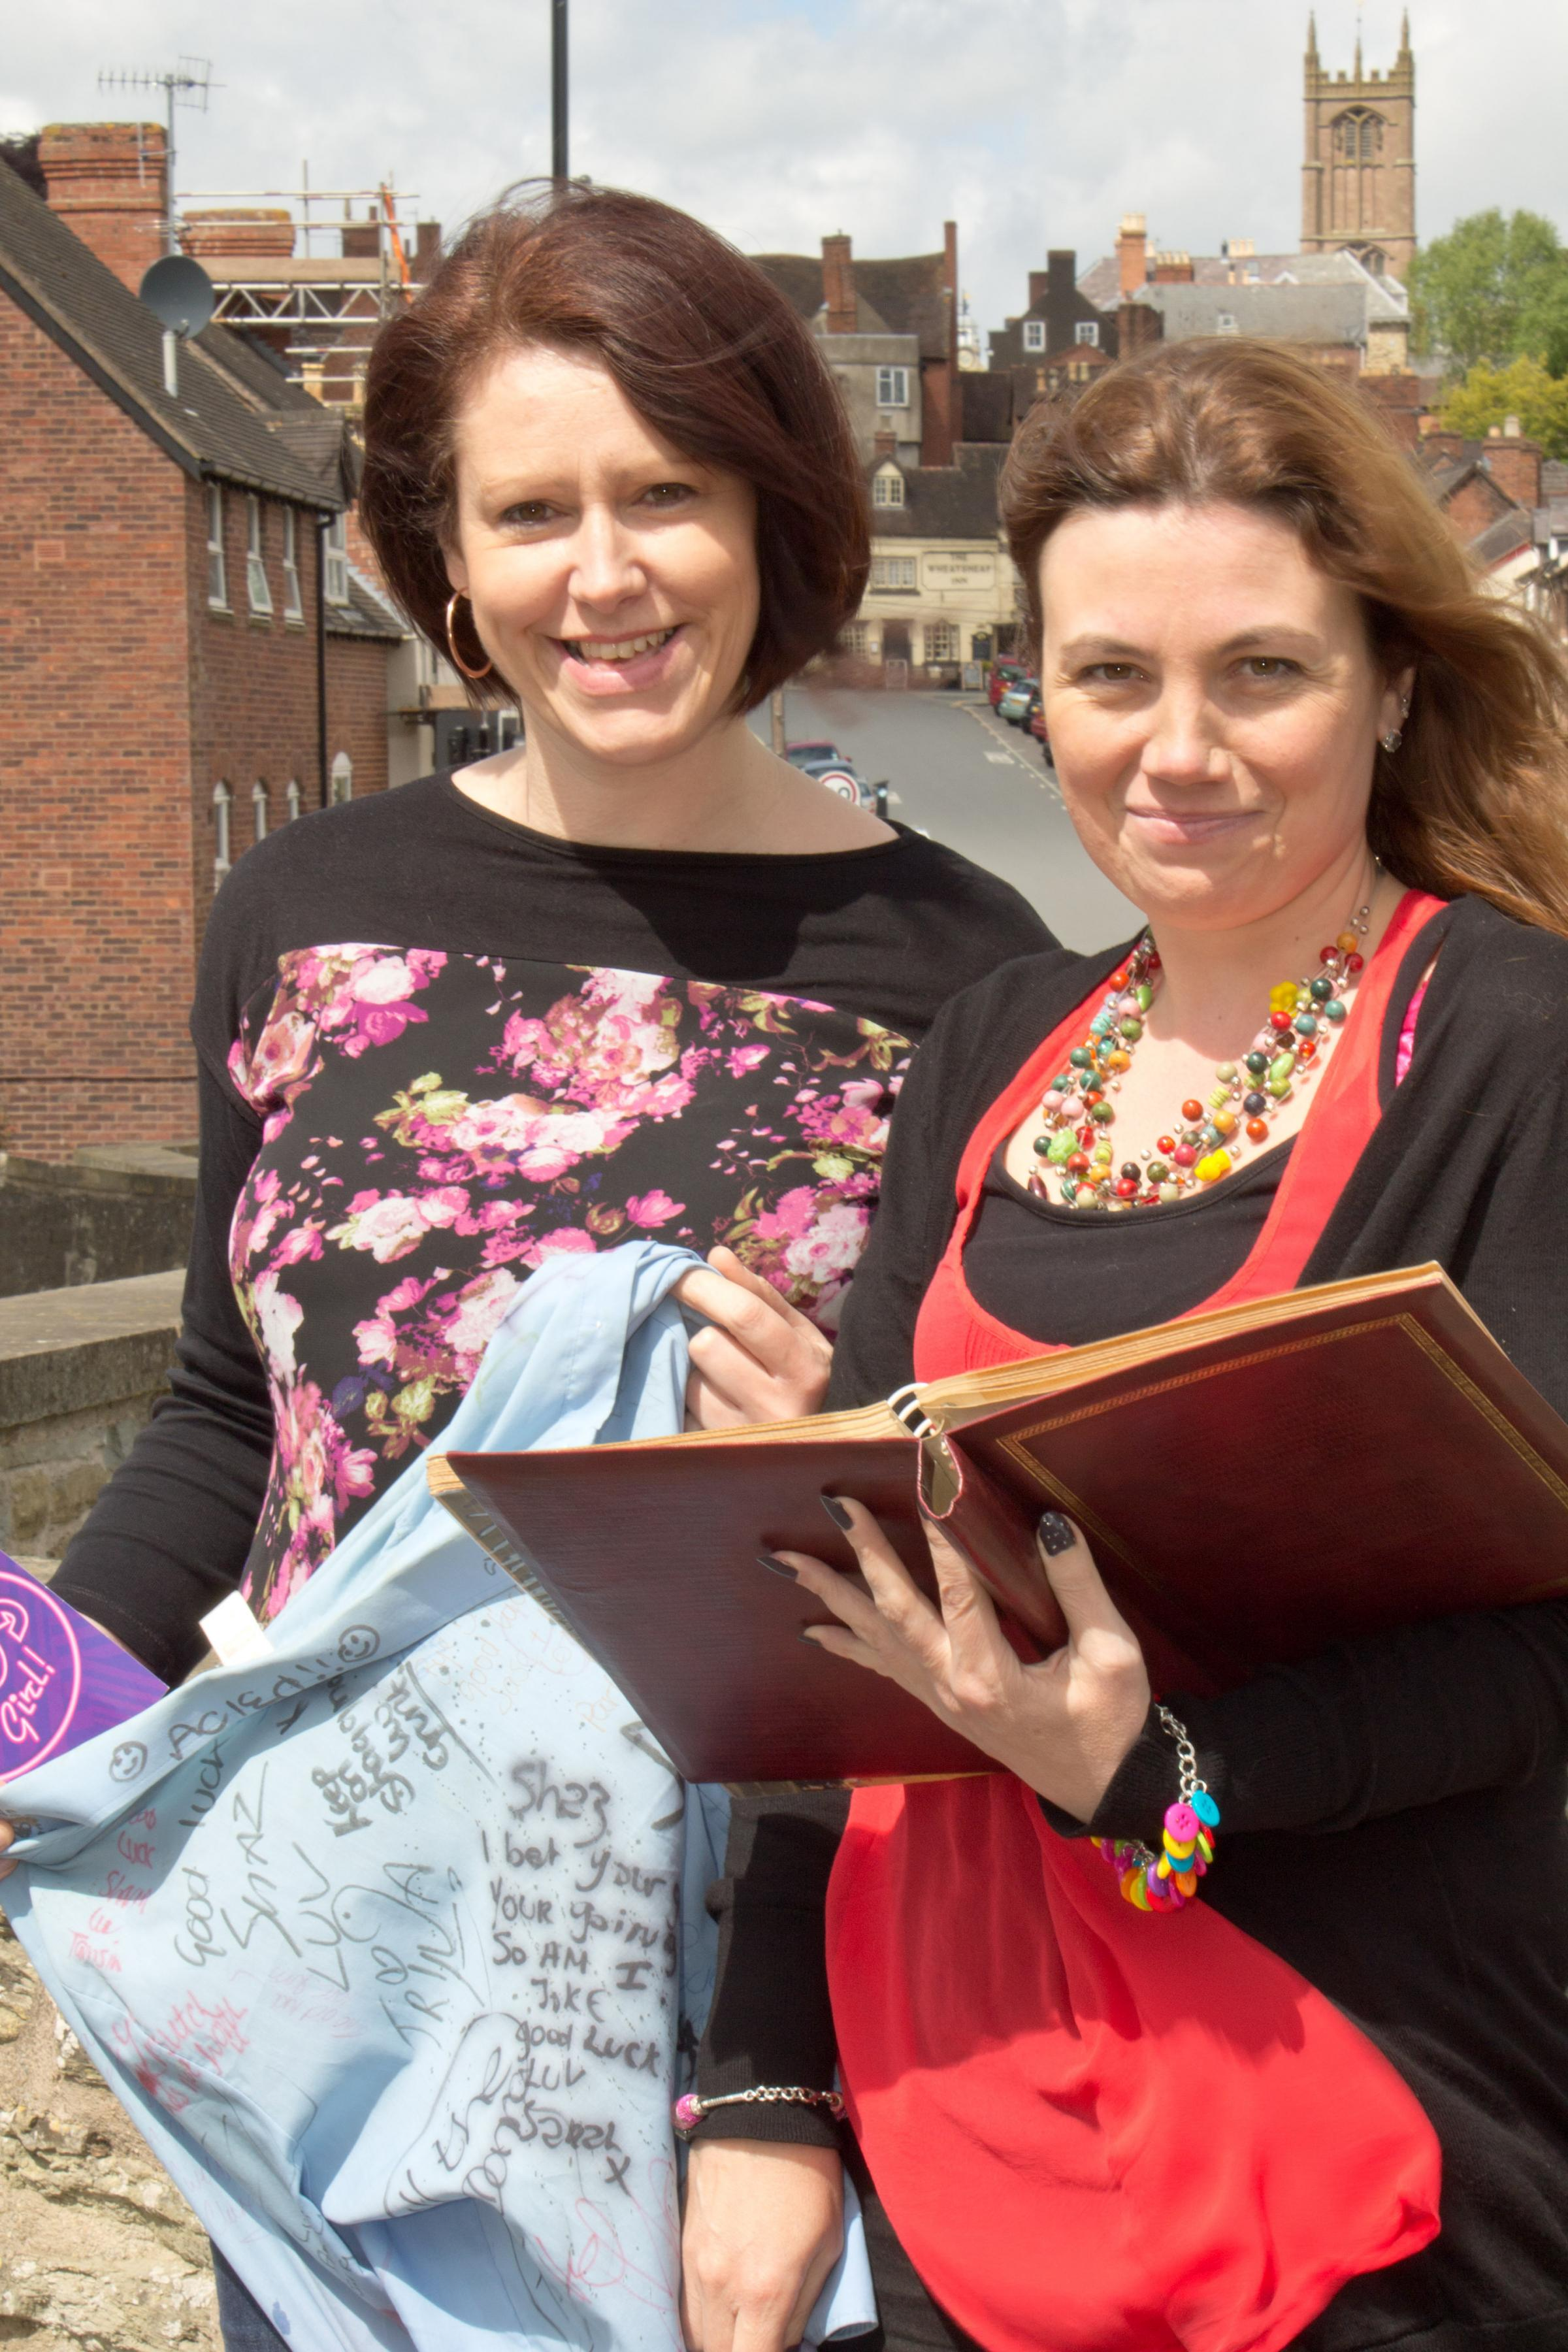 Looking at a book of memories from their school days are Sharon Turner, clutching her old school shirt, and Tracey Chidley. Picture by Mark Bowen.